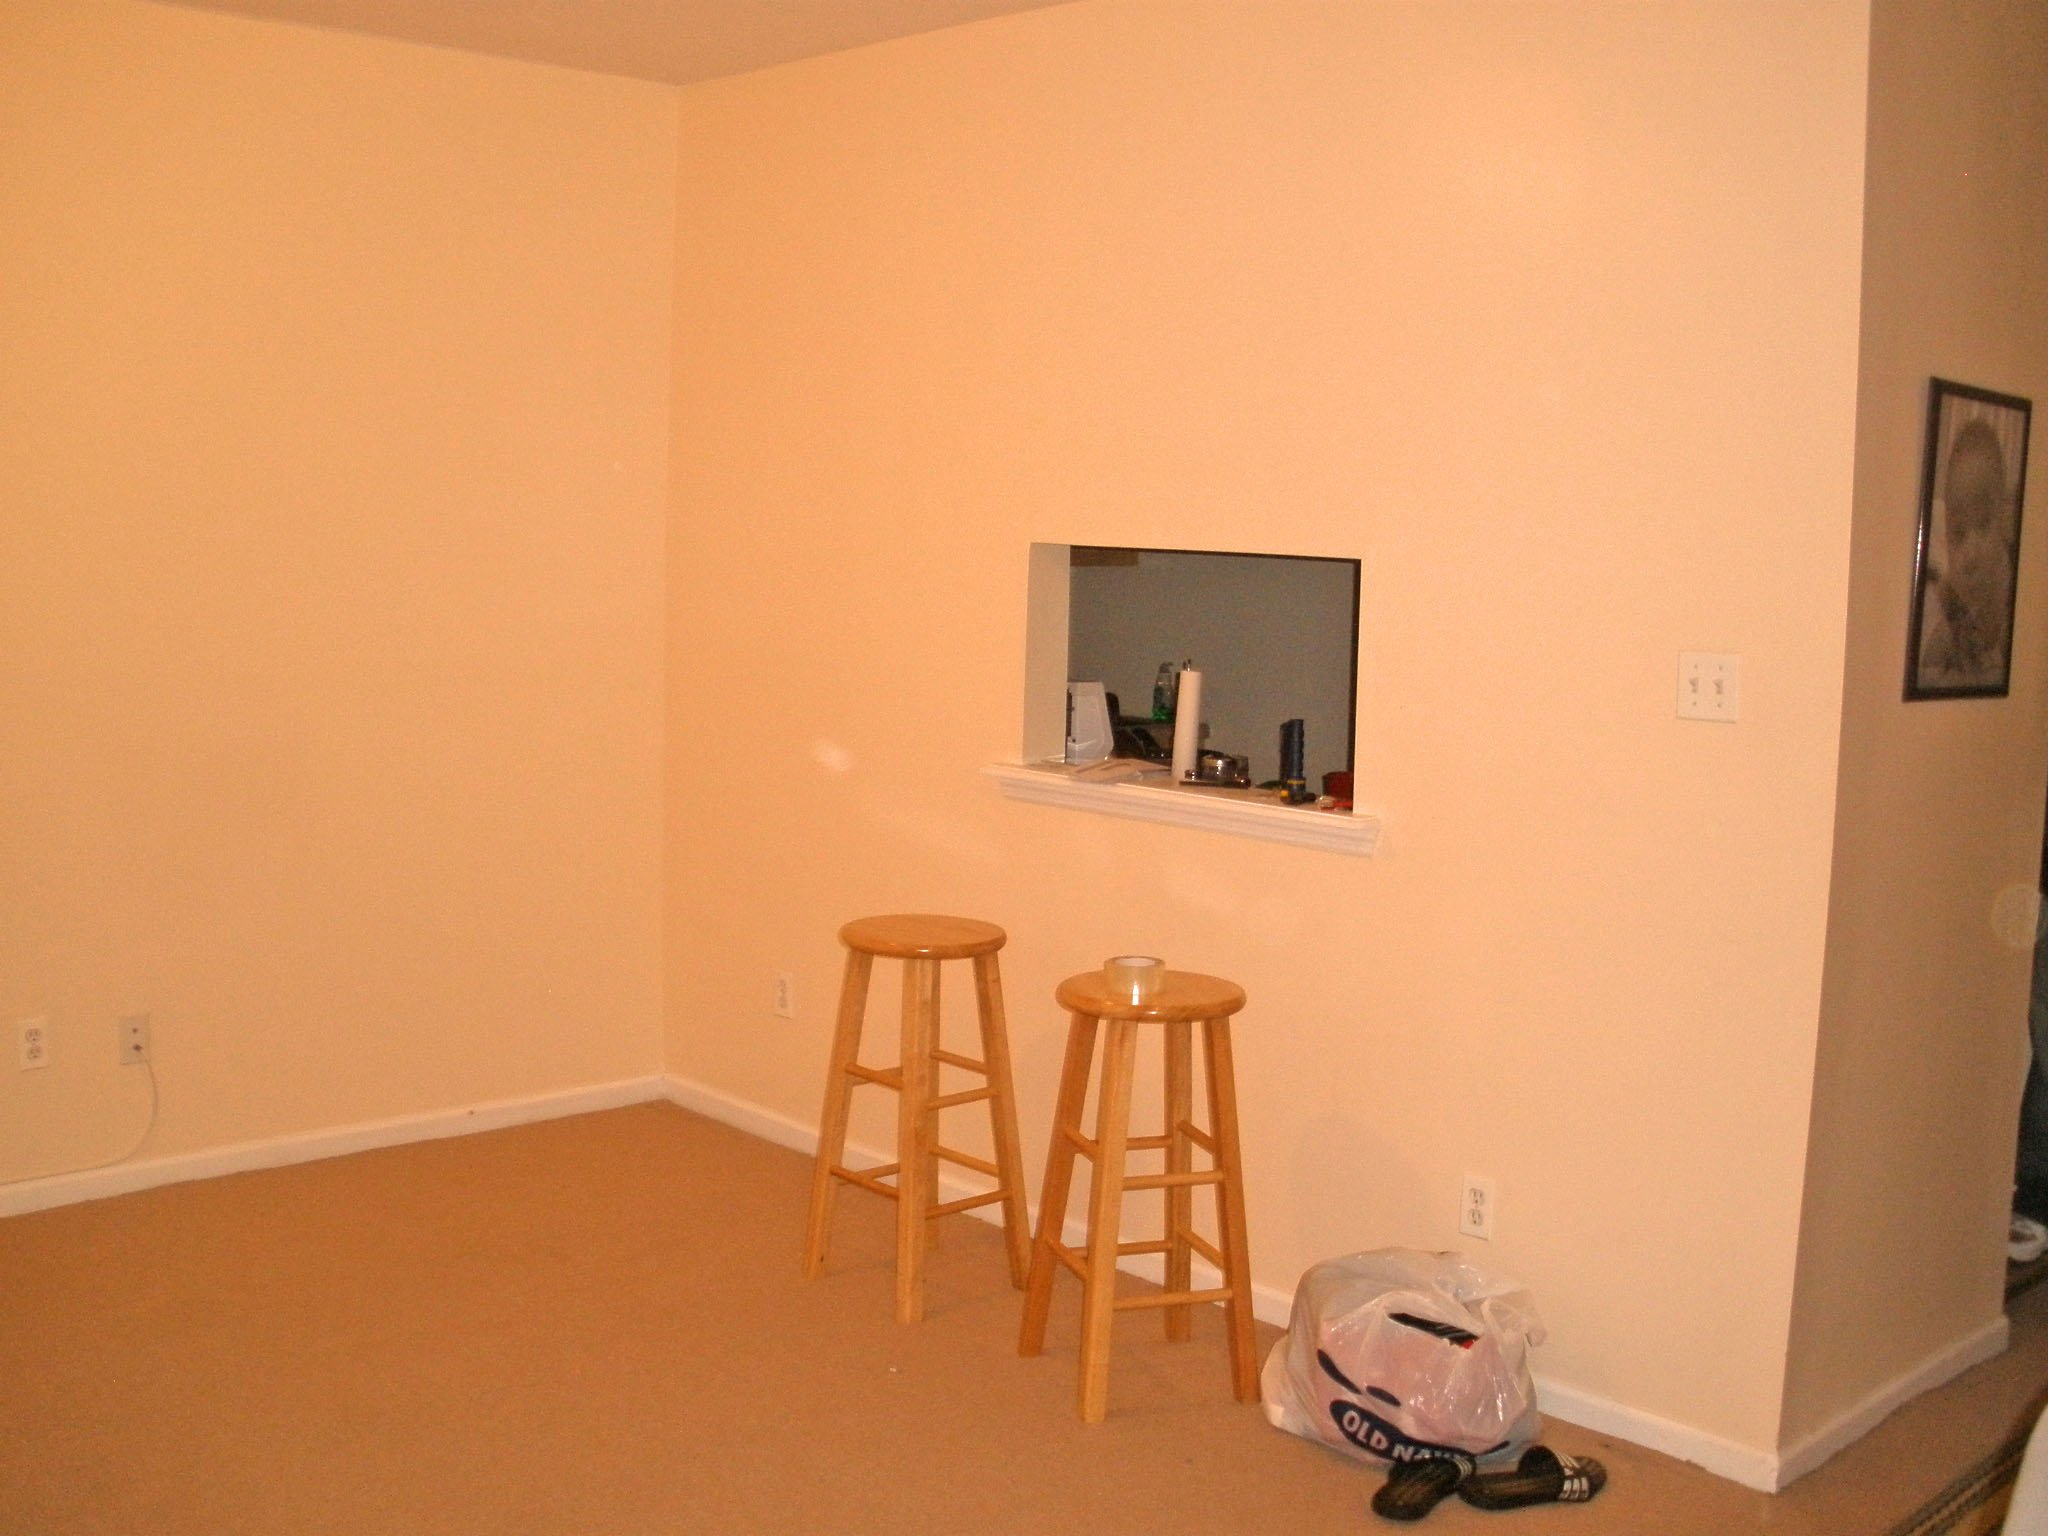 Bed stuy 1 bedroom apartment for rent brooklyn crg3104 for Two bedroom apt in bed stuy area